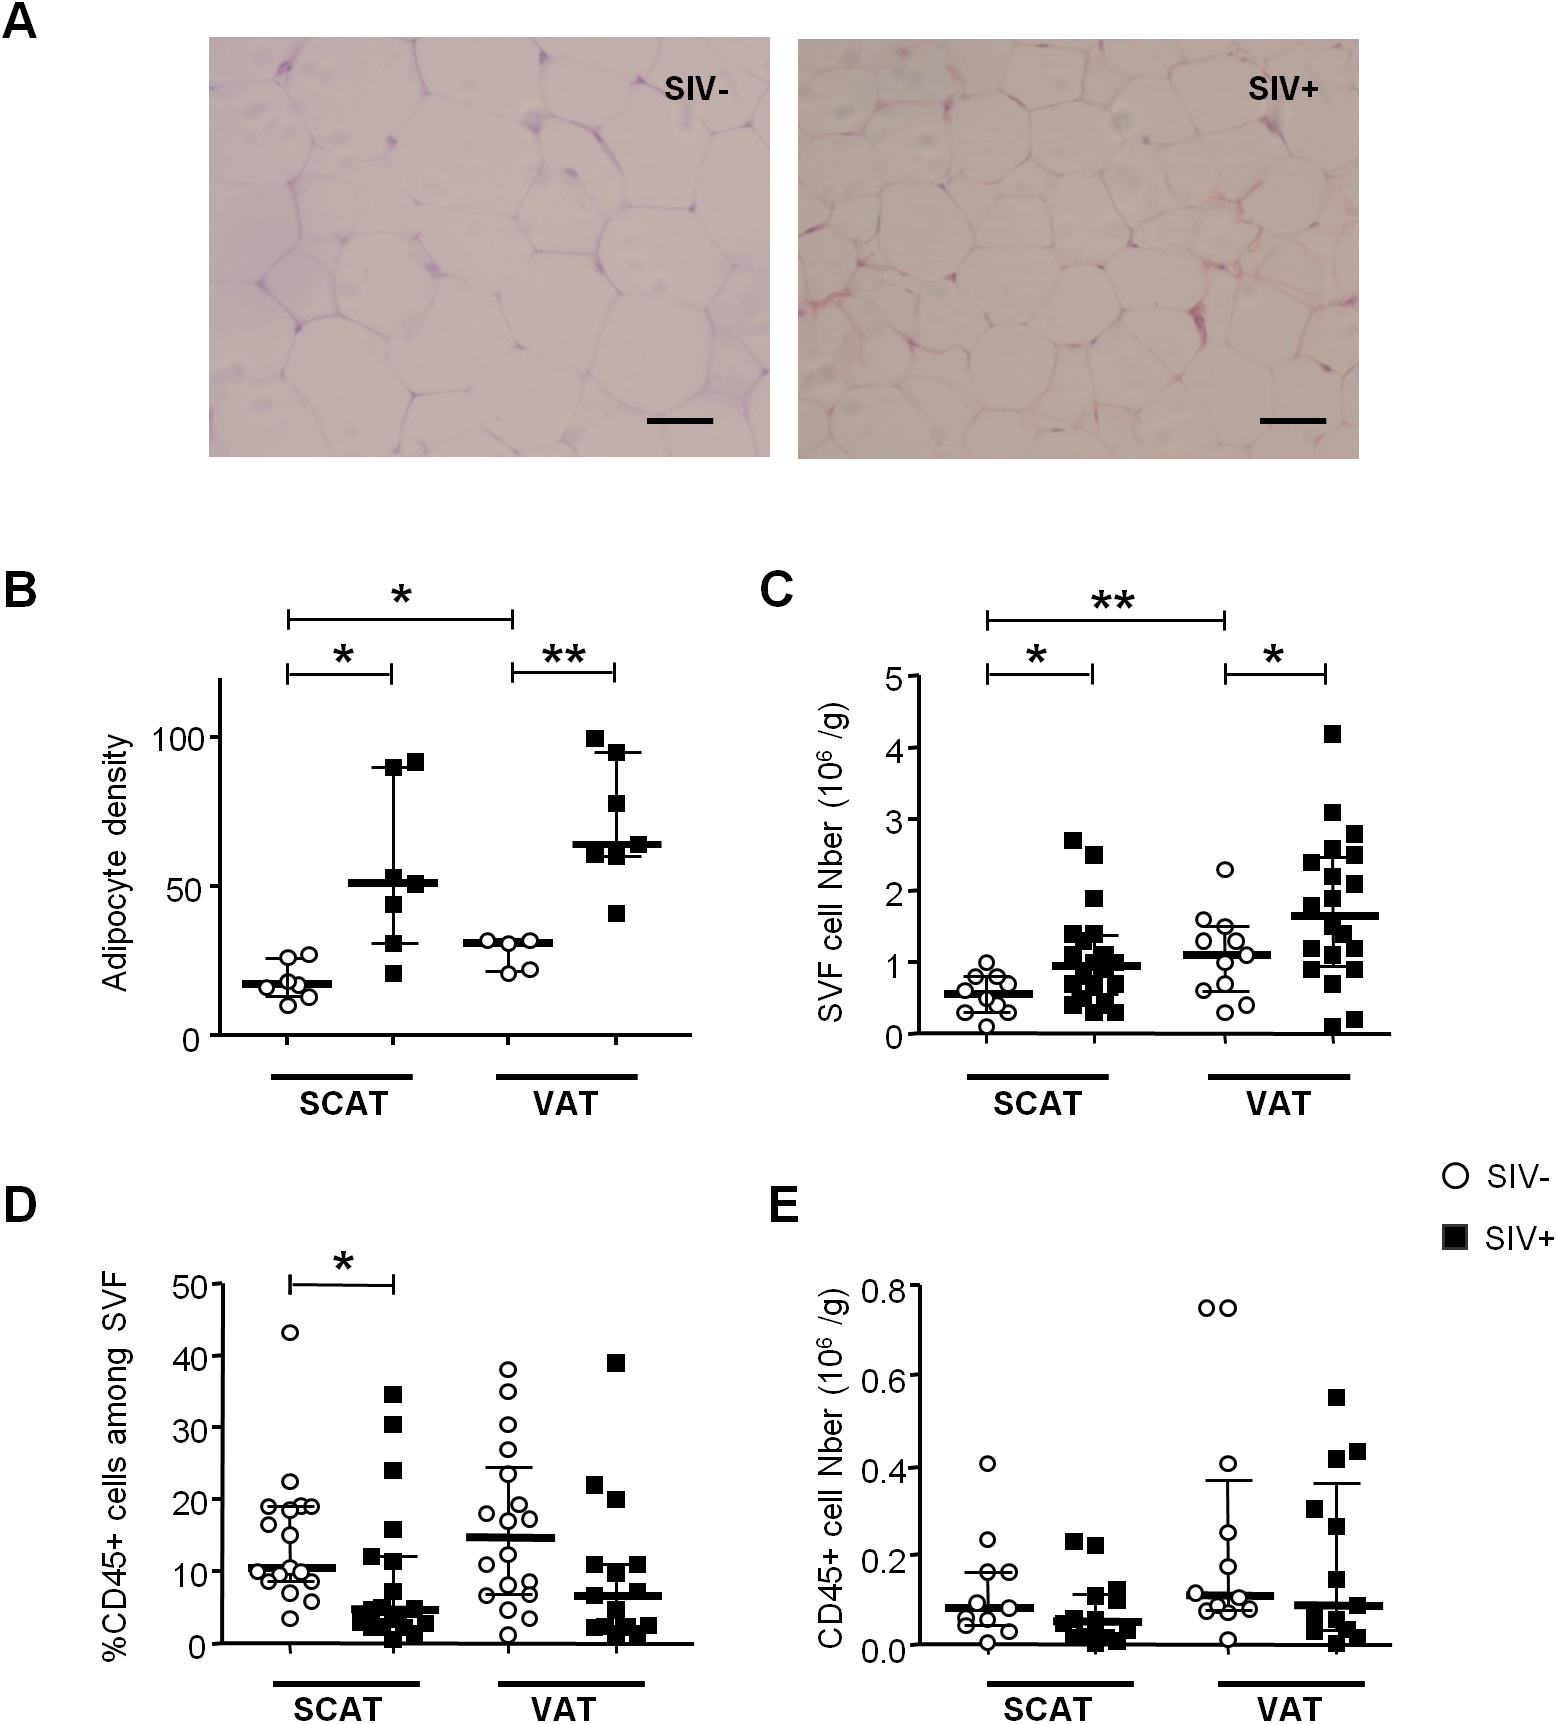 The influence of SIV infection on adipocyte and SVF cell density.